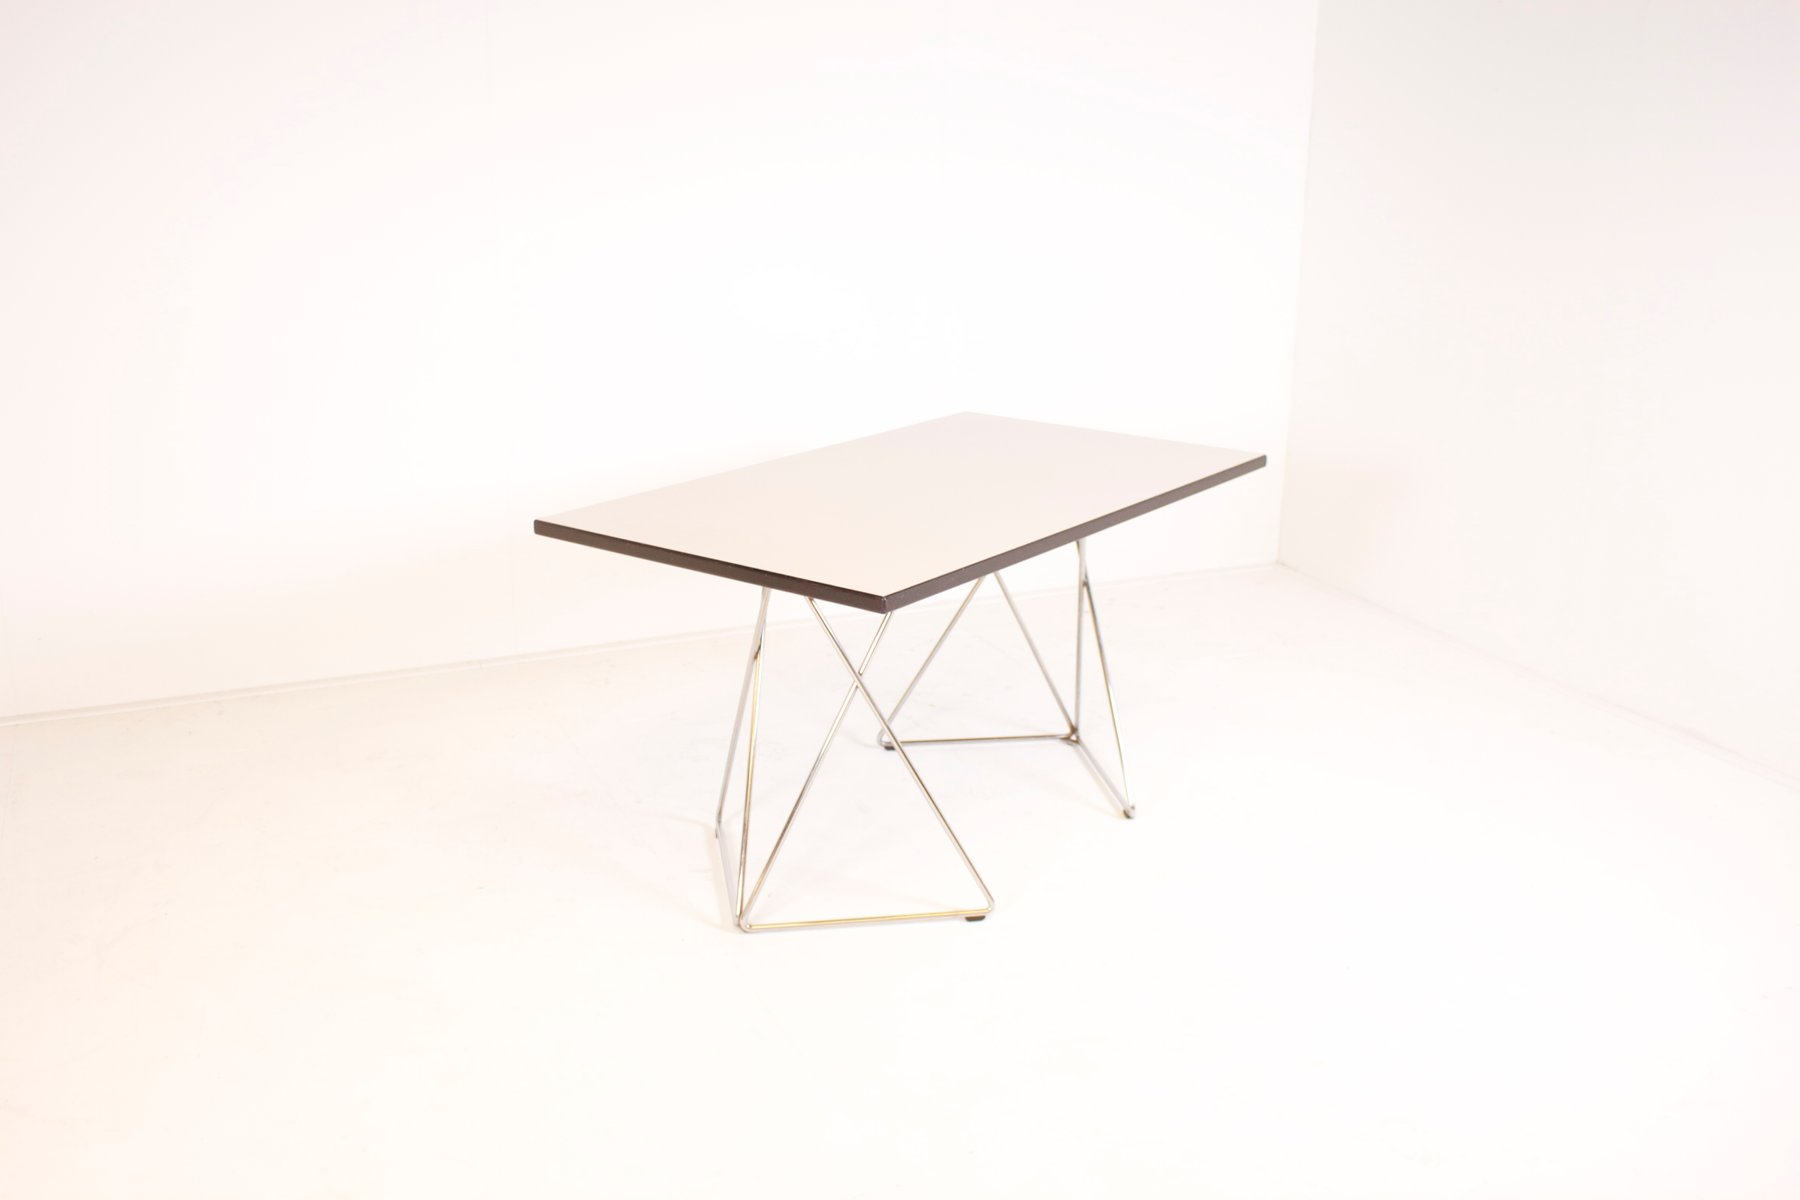 Table ou bureau graphique en formica et chrome de thonet autriche